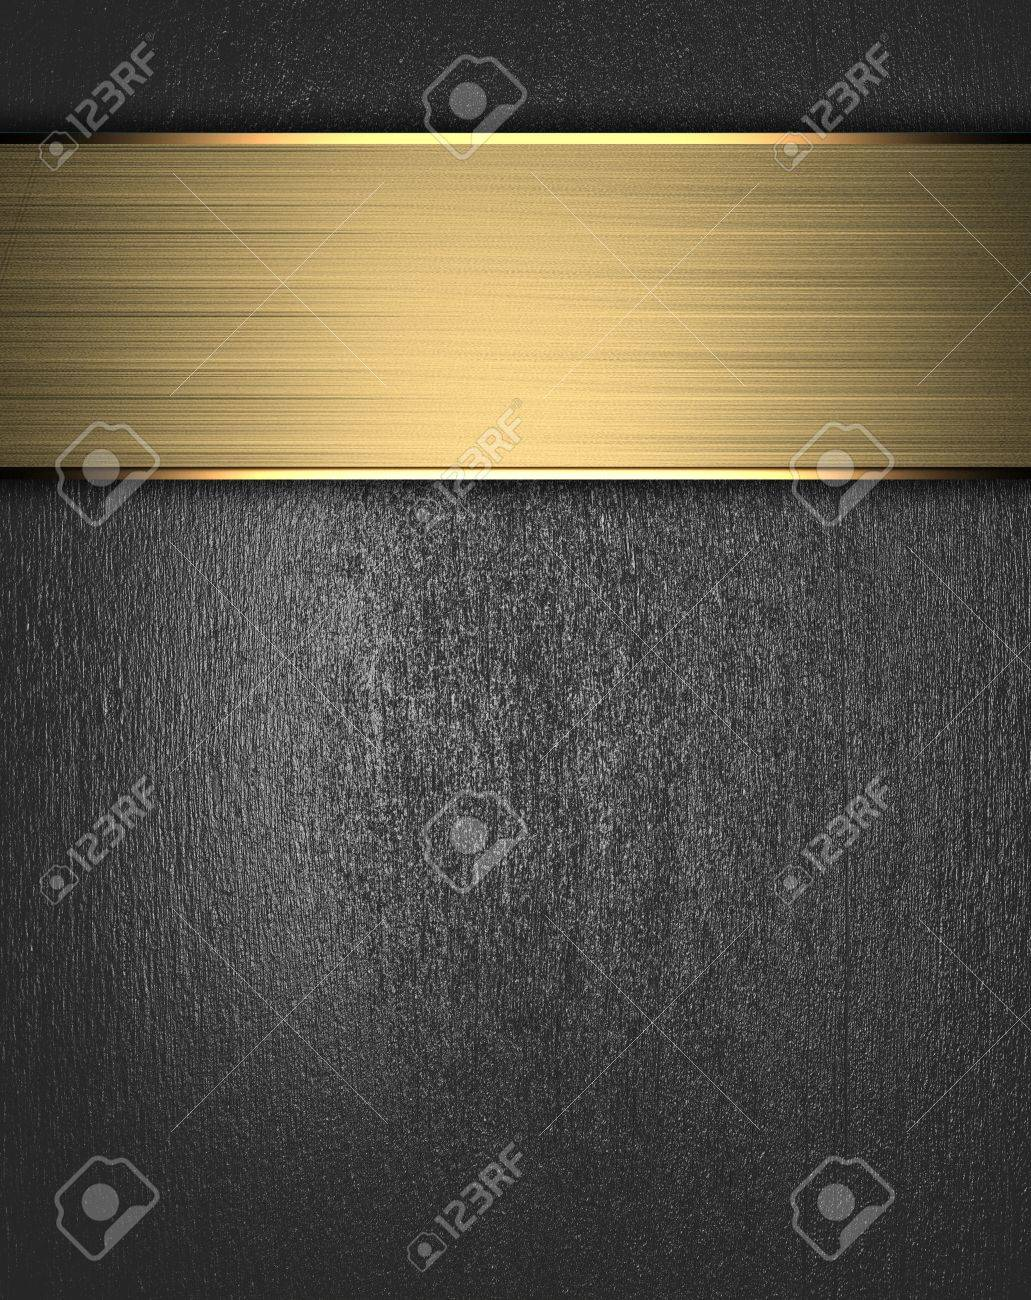 Metal Background with golden name plate Stock Photo - 15242040